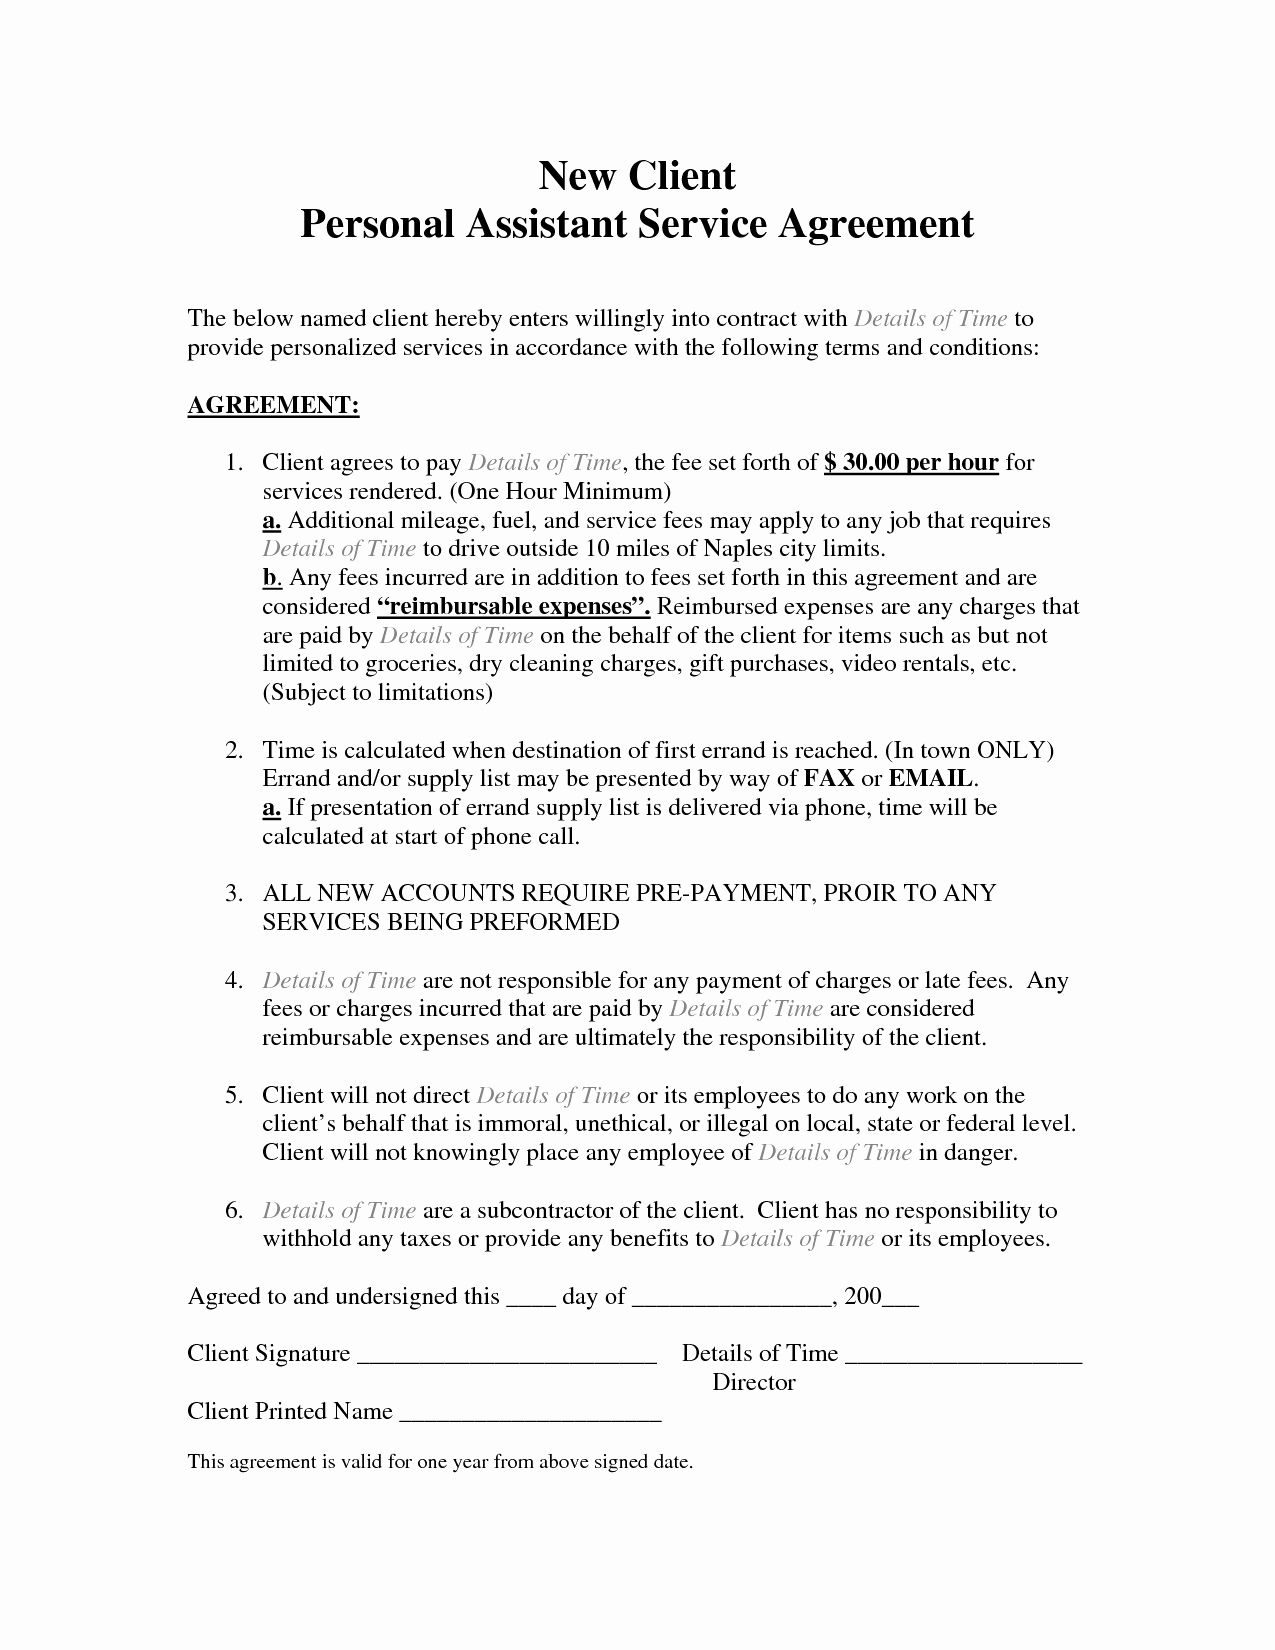 Image Result For Personal Assistant Contract Personal Assistant Personal Assistant Services Person